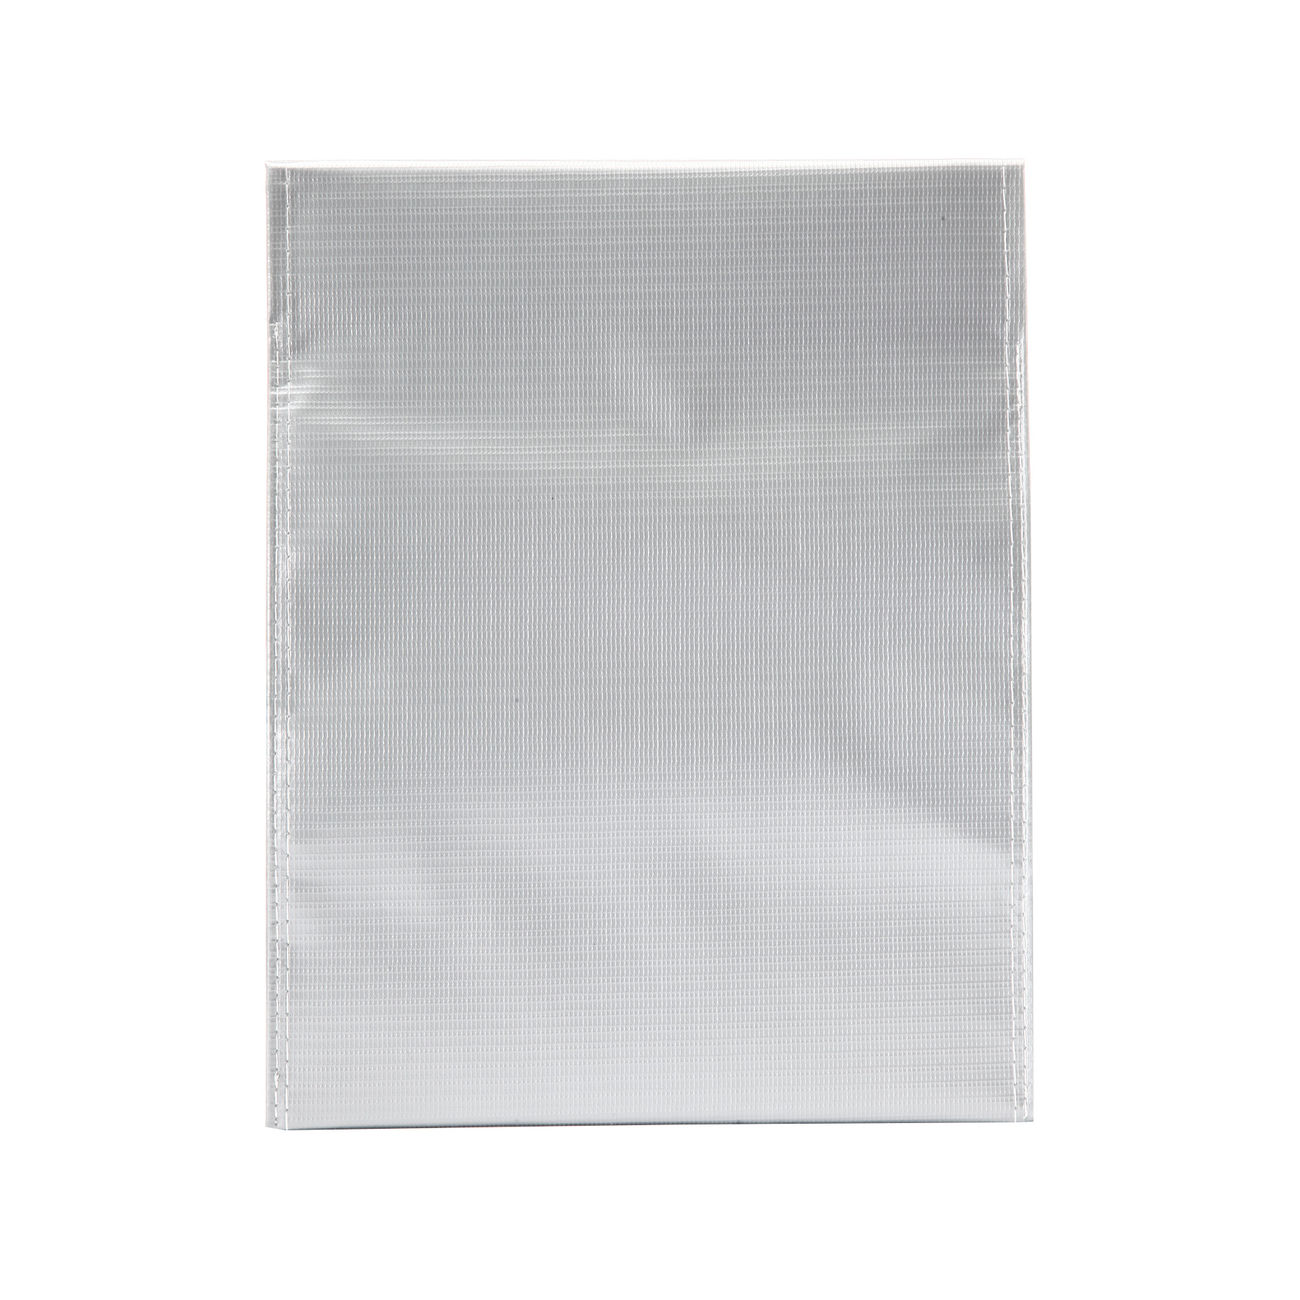 101 INC. LiPo Safe Bag 23x29cm silber 2